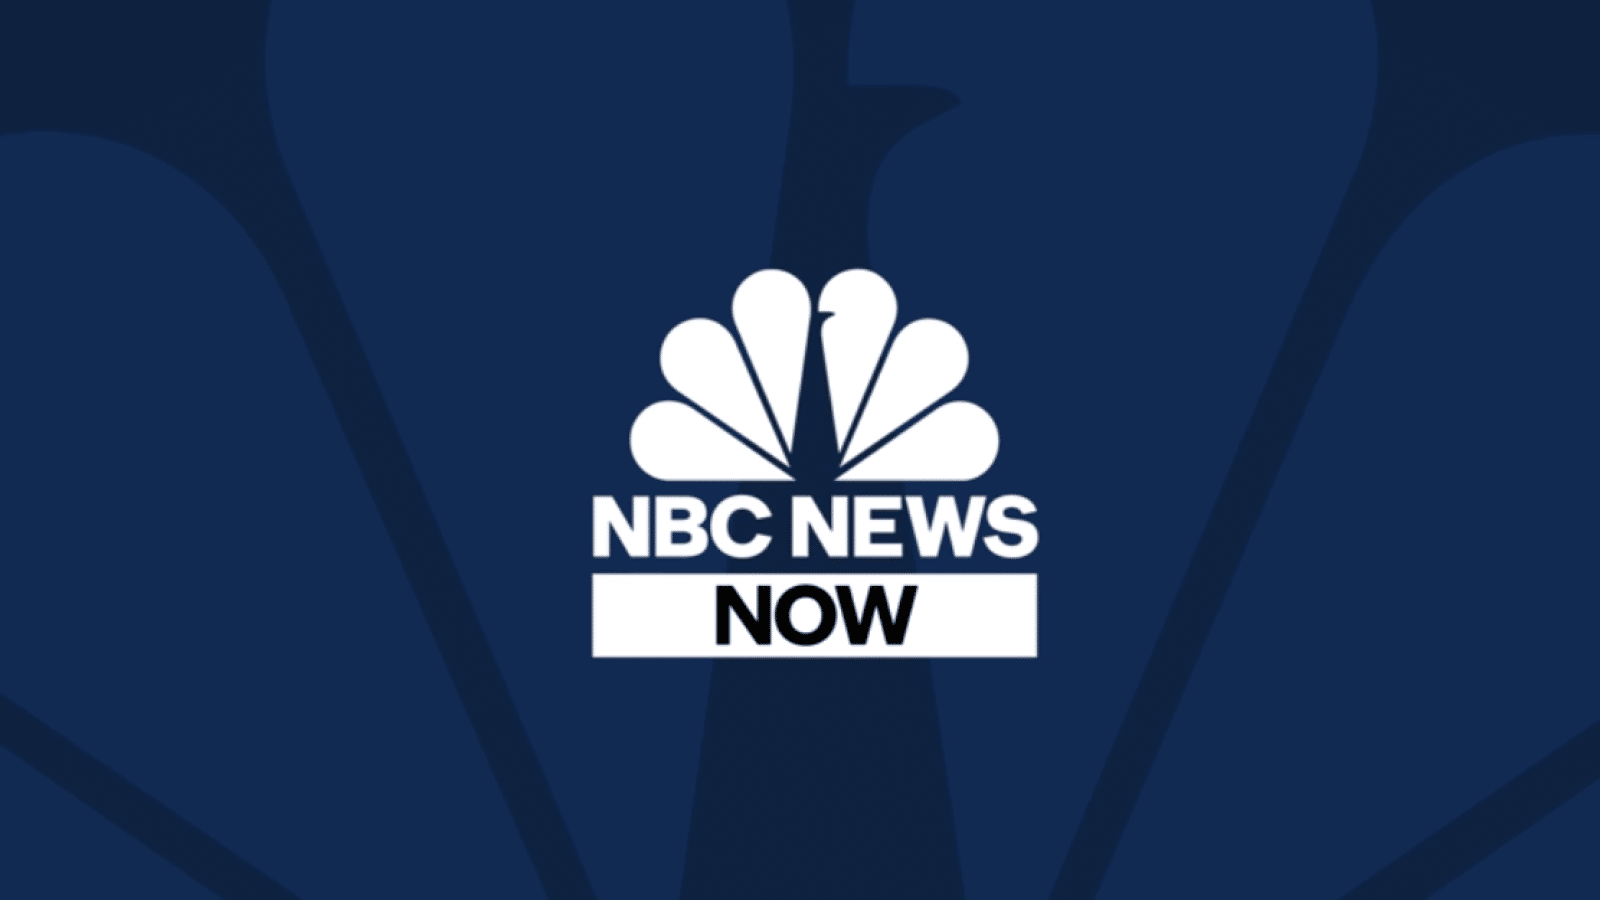 nbc news now logo on dark blue background